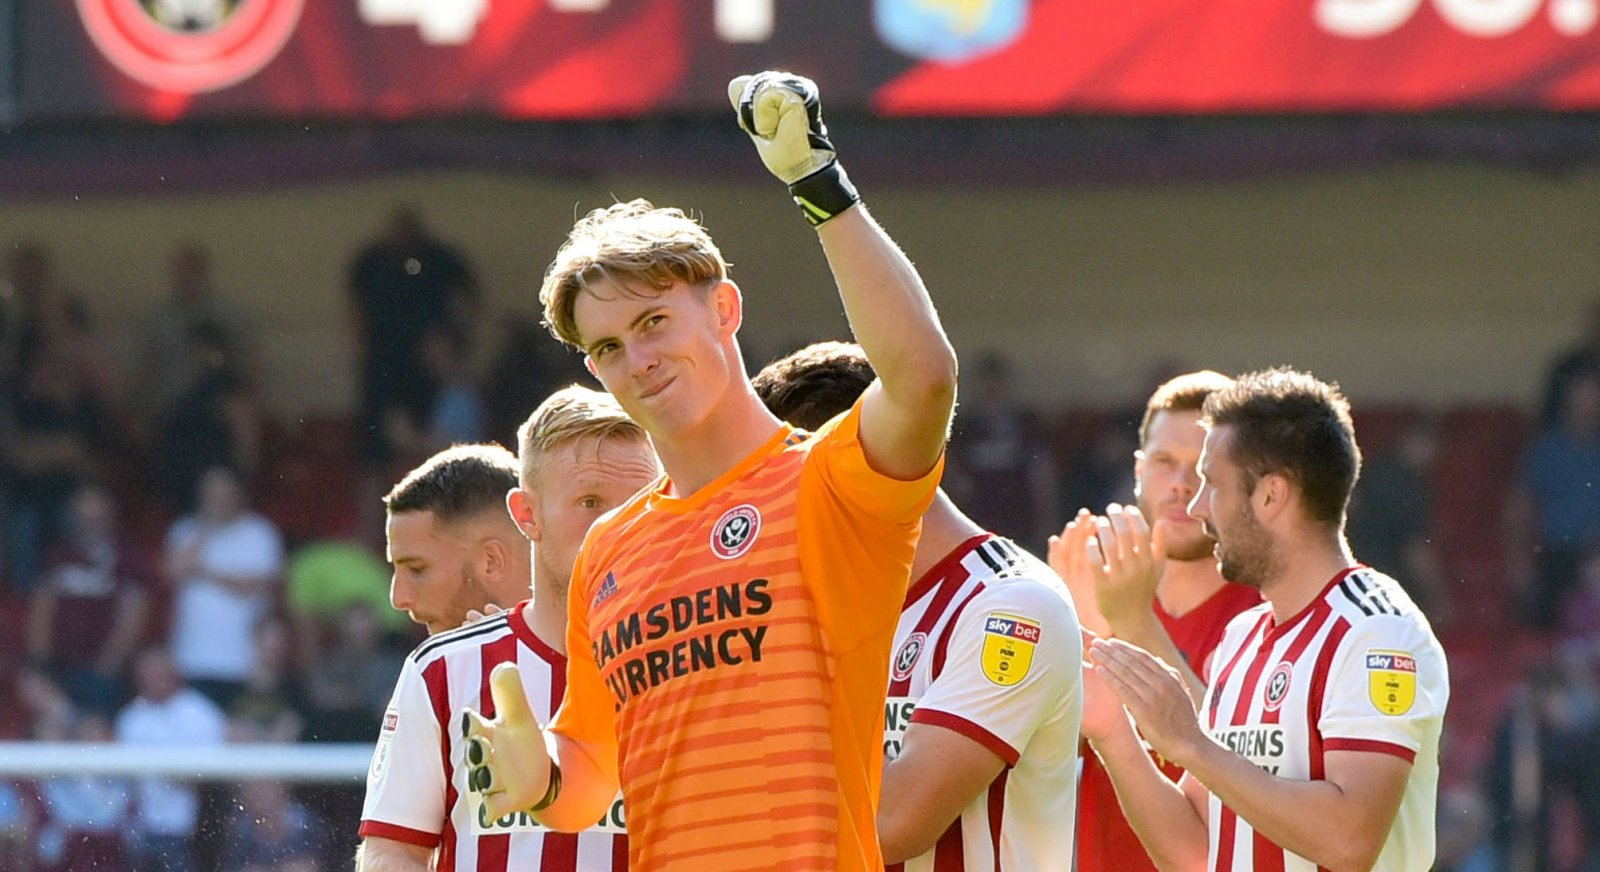 Surely not' - Plenty of Sheffield United fans react to